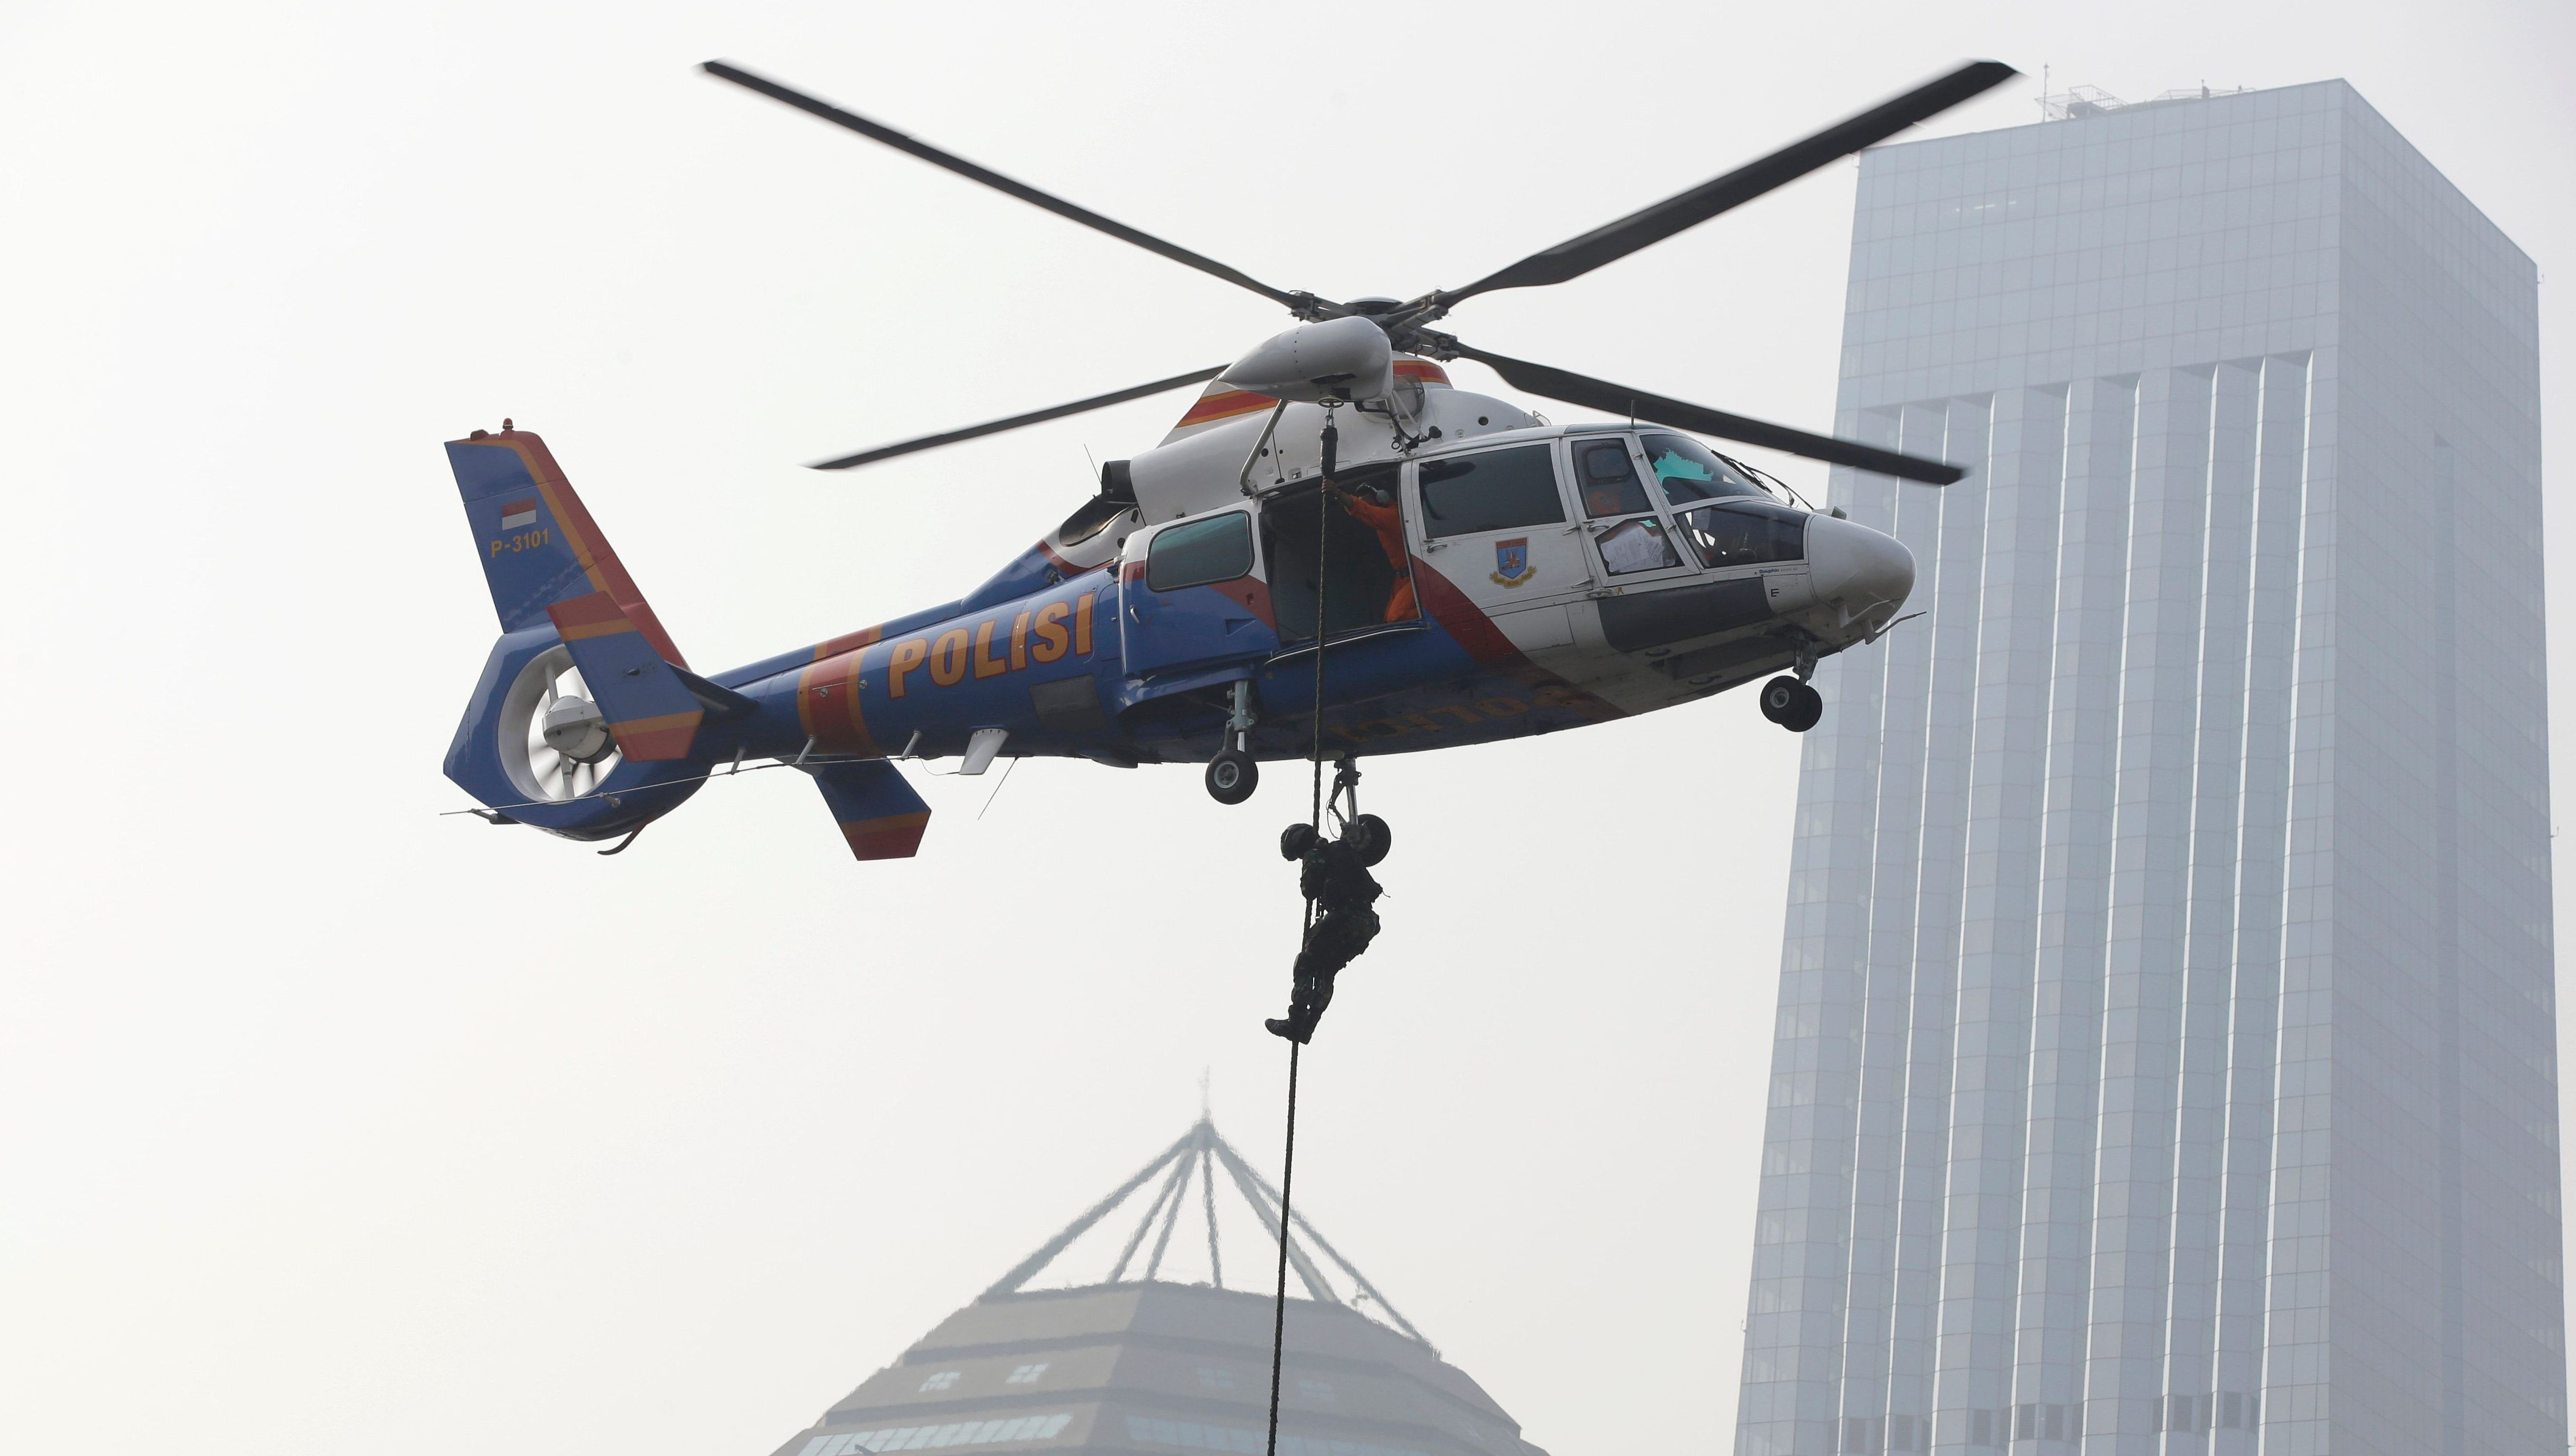 Indonesian police rappel down from a helicopter during an anti-riot exercise as part of security preparations for the 2018 Asian Games in Jakarta, Indonesia, Tuesday, July 31, 2018. (AP Photo/Achmad Ibrahim)